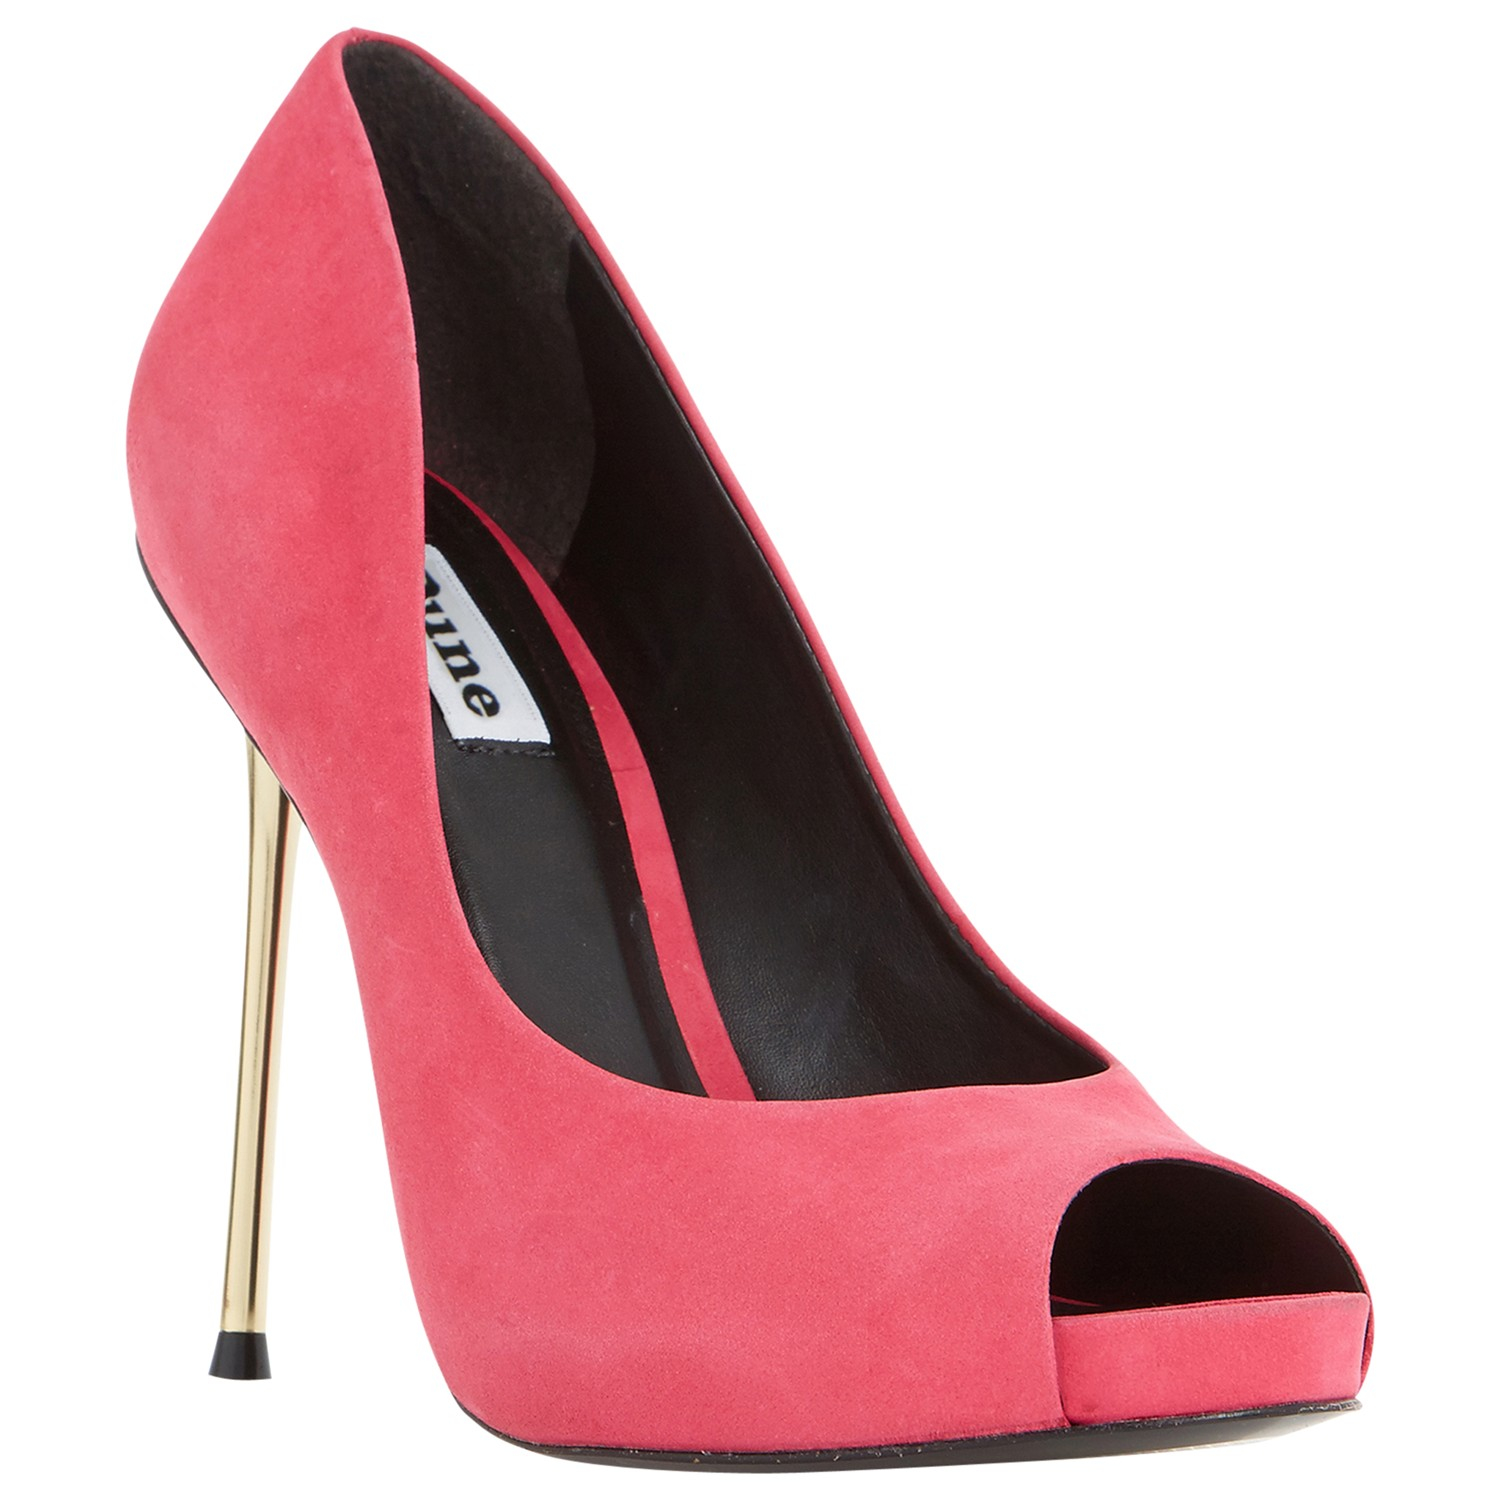 dune desiree peep toe stiletto court shoes in pink lyst